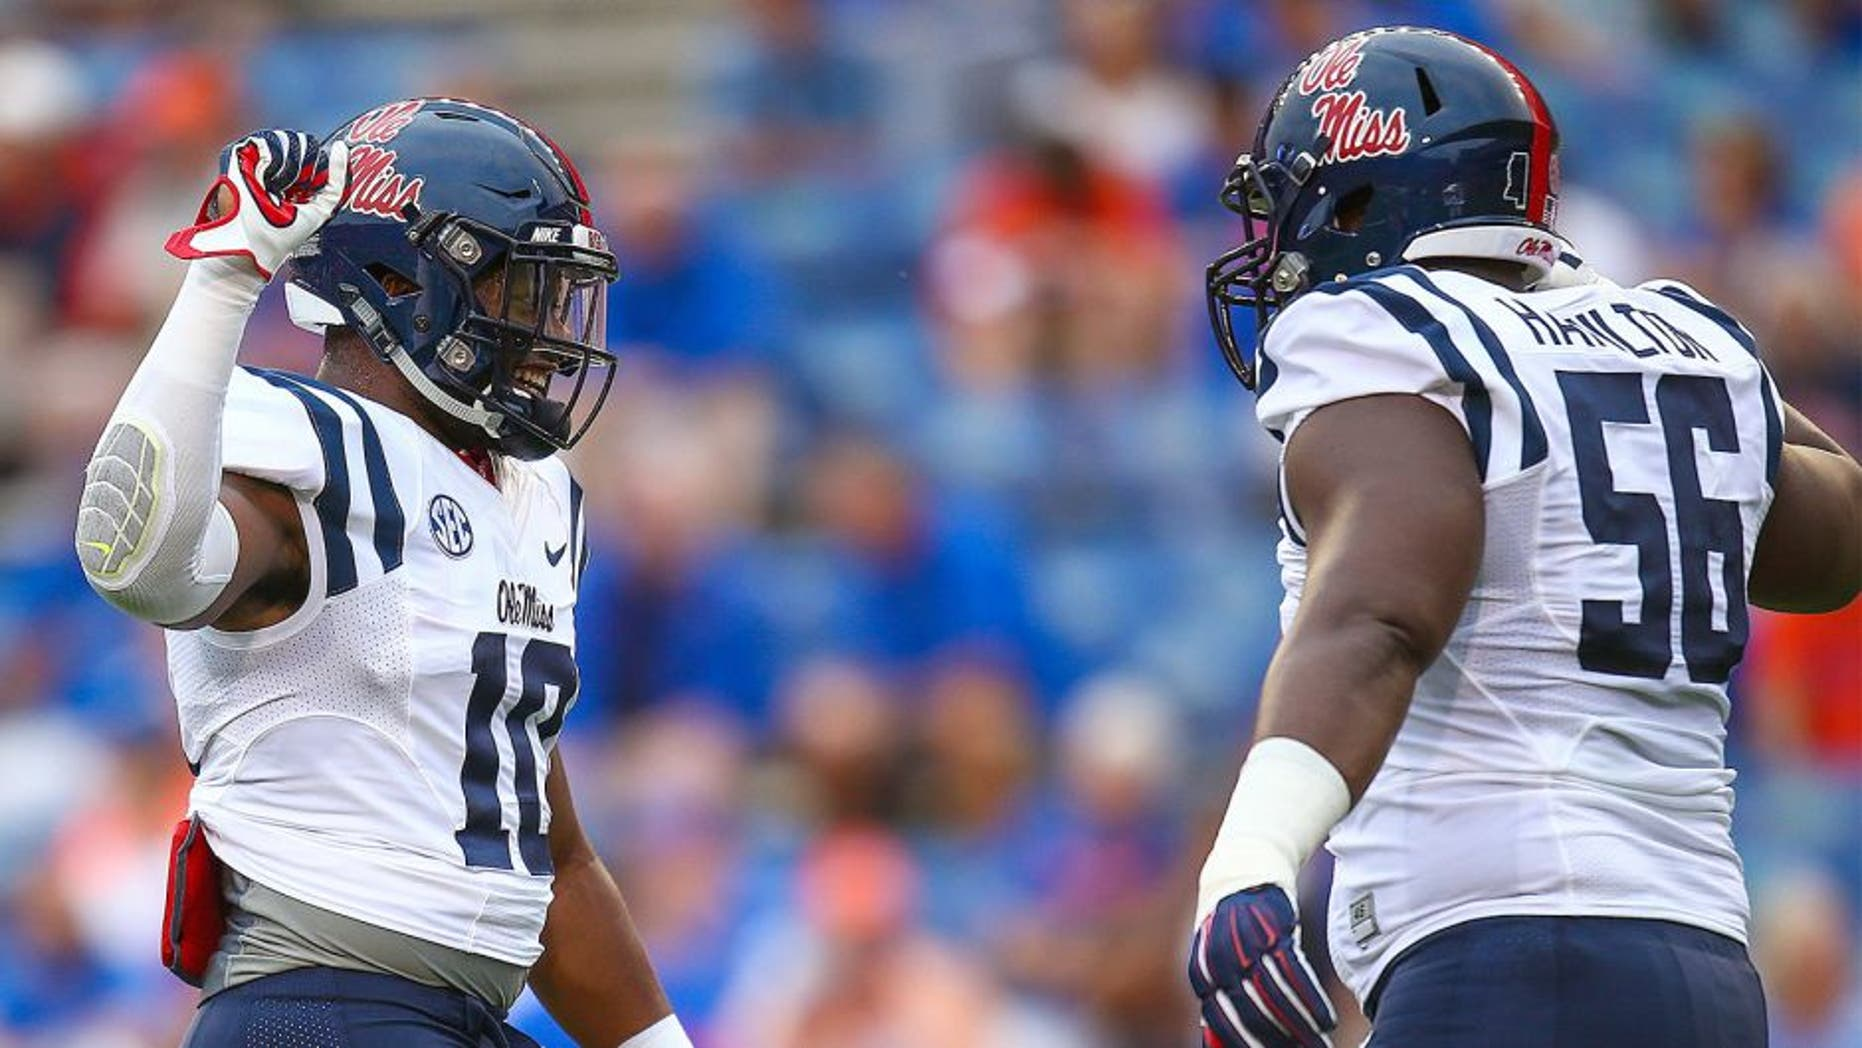 GAINESVILLE, FL - OCTOBER 03: C.J. Johnson #10 of the Mississippi Rebels slaps hands with Woodrow Hamilton #56 of the Mississippi Rebels before the game against the Florida Gators on October 3, 2015 in Gainesville, Florida. (Photo by Rob Foldy/Getty Images)